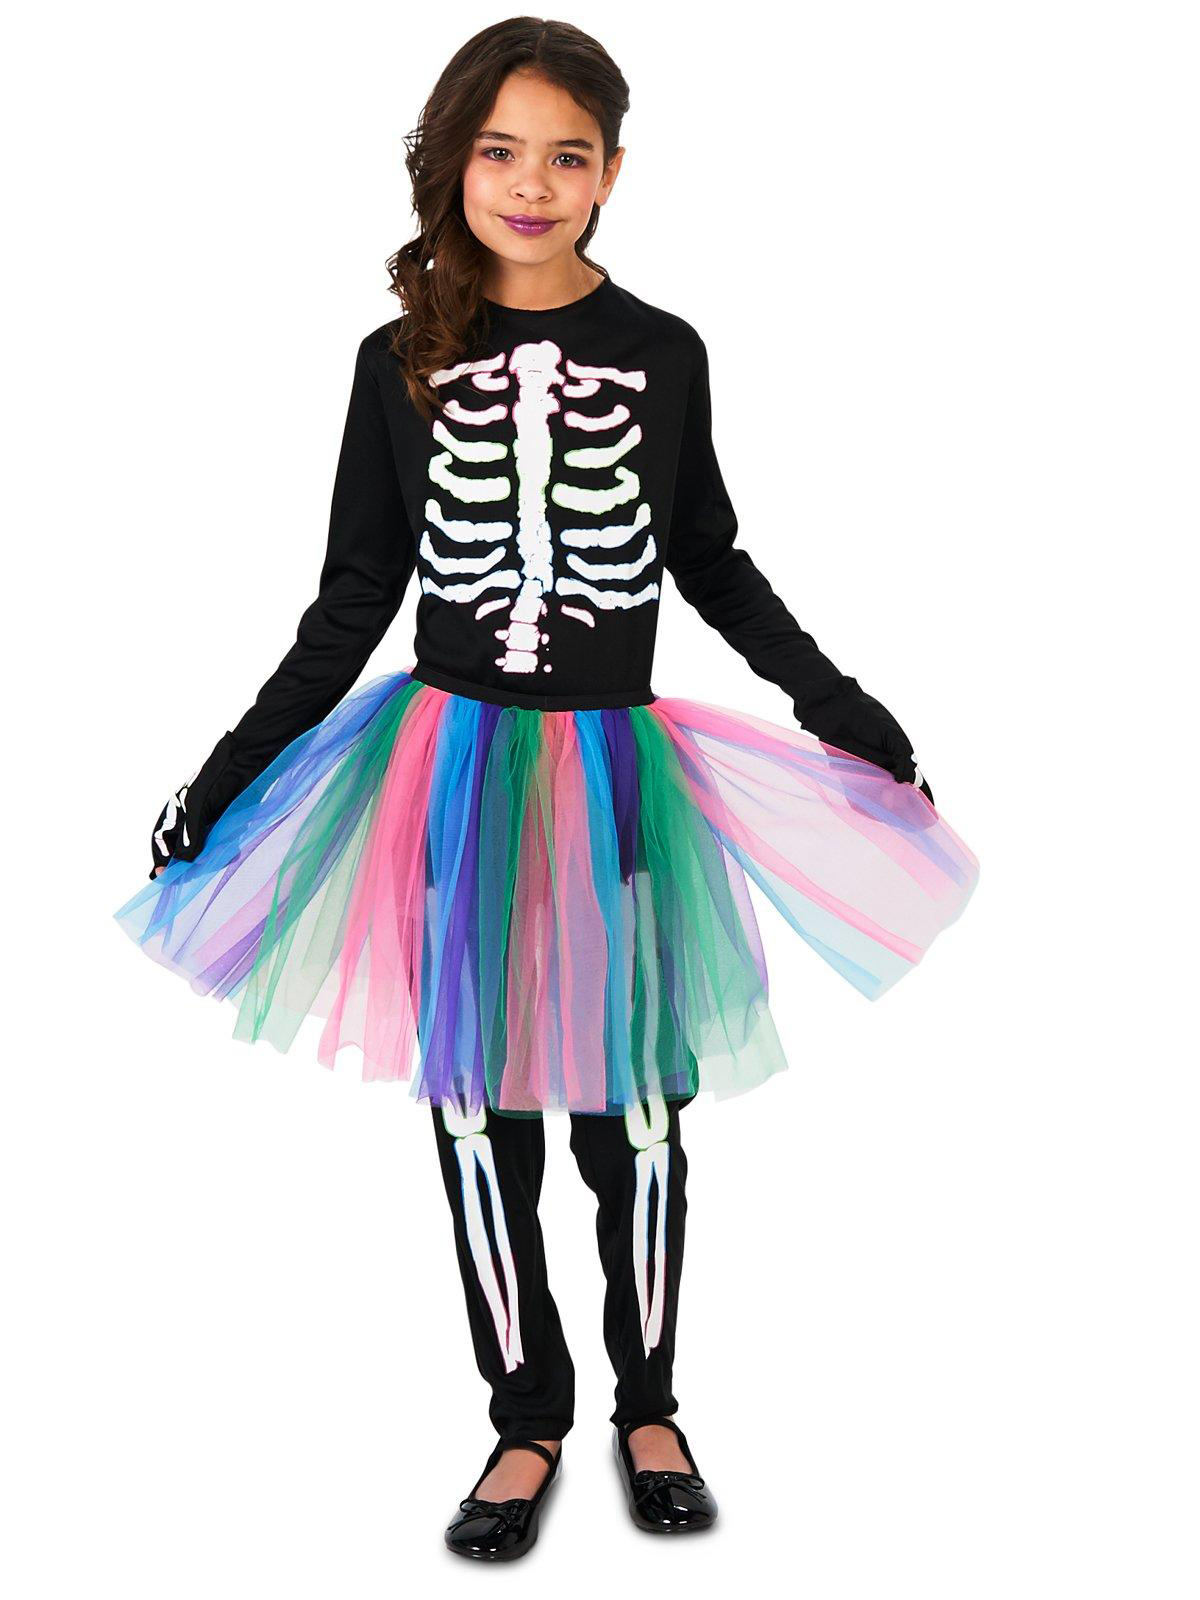 Skeleton Child Costume 17235-S